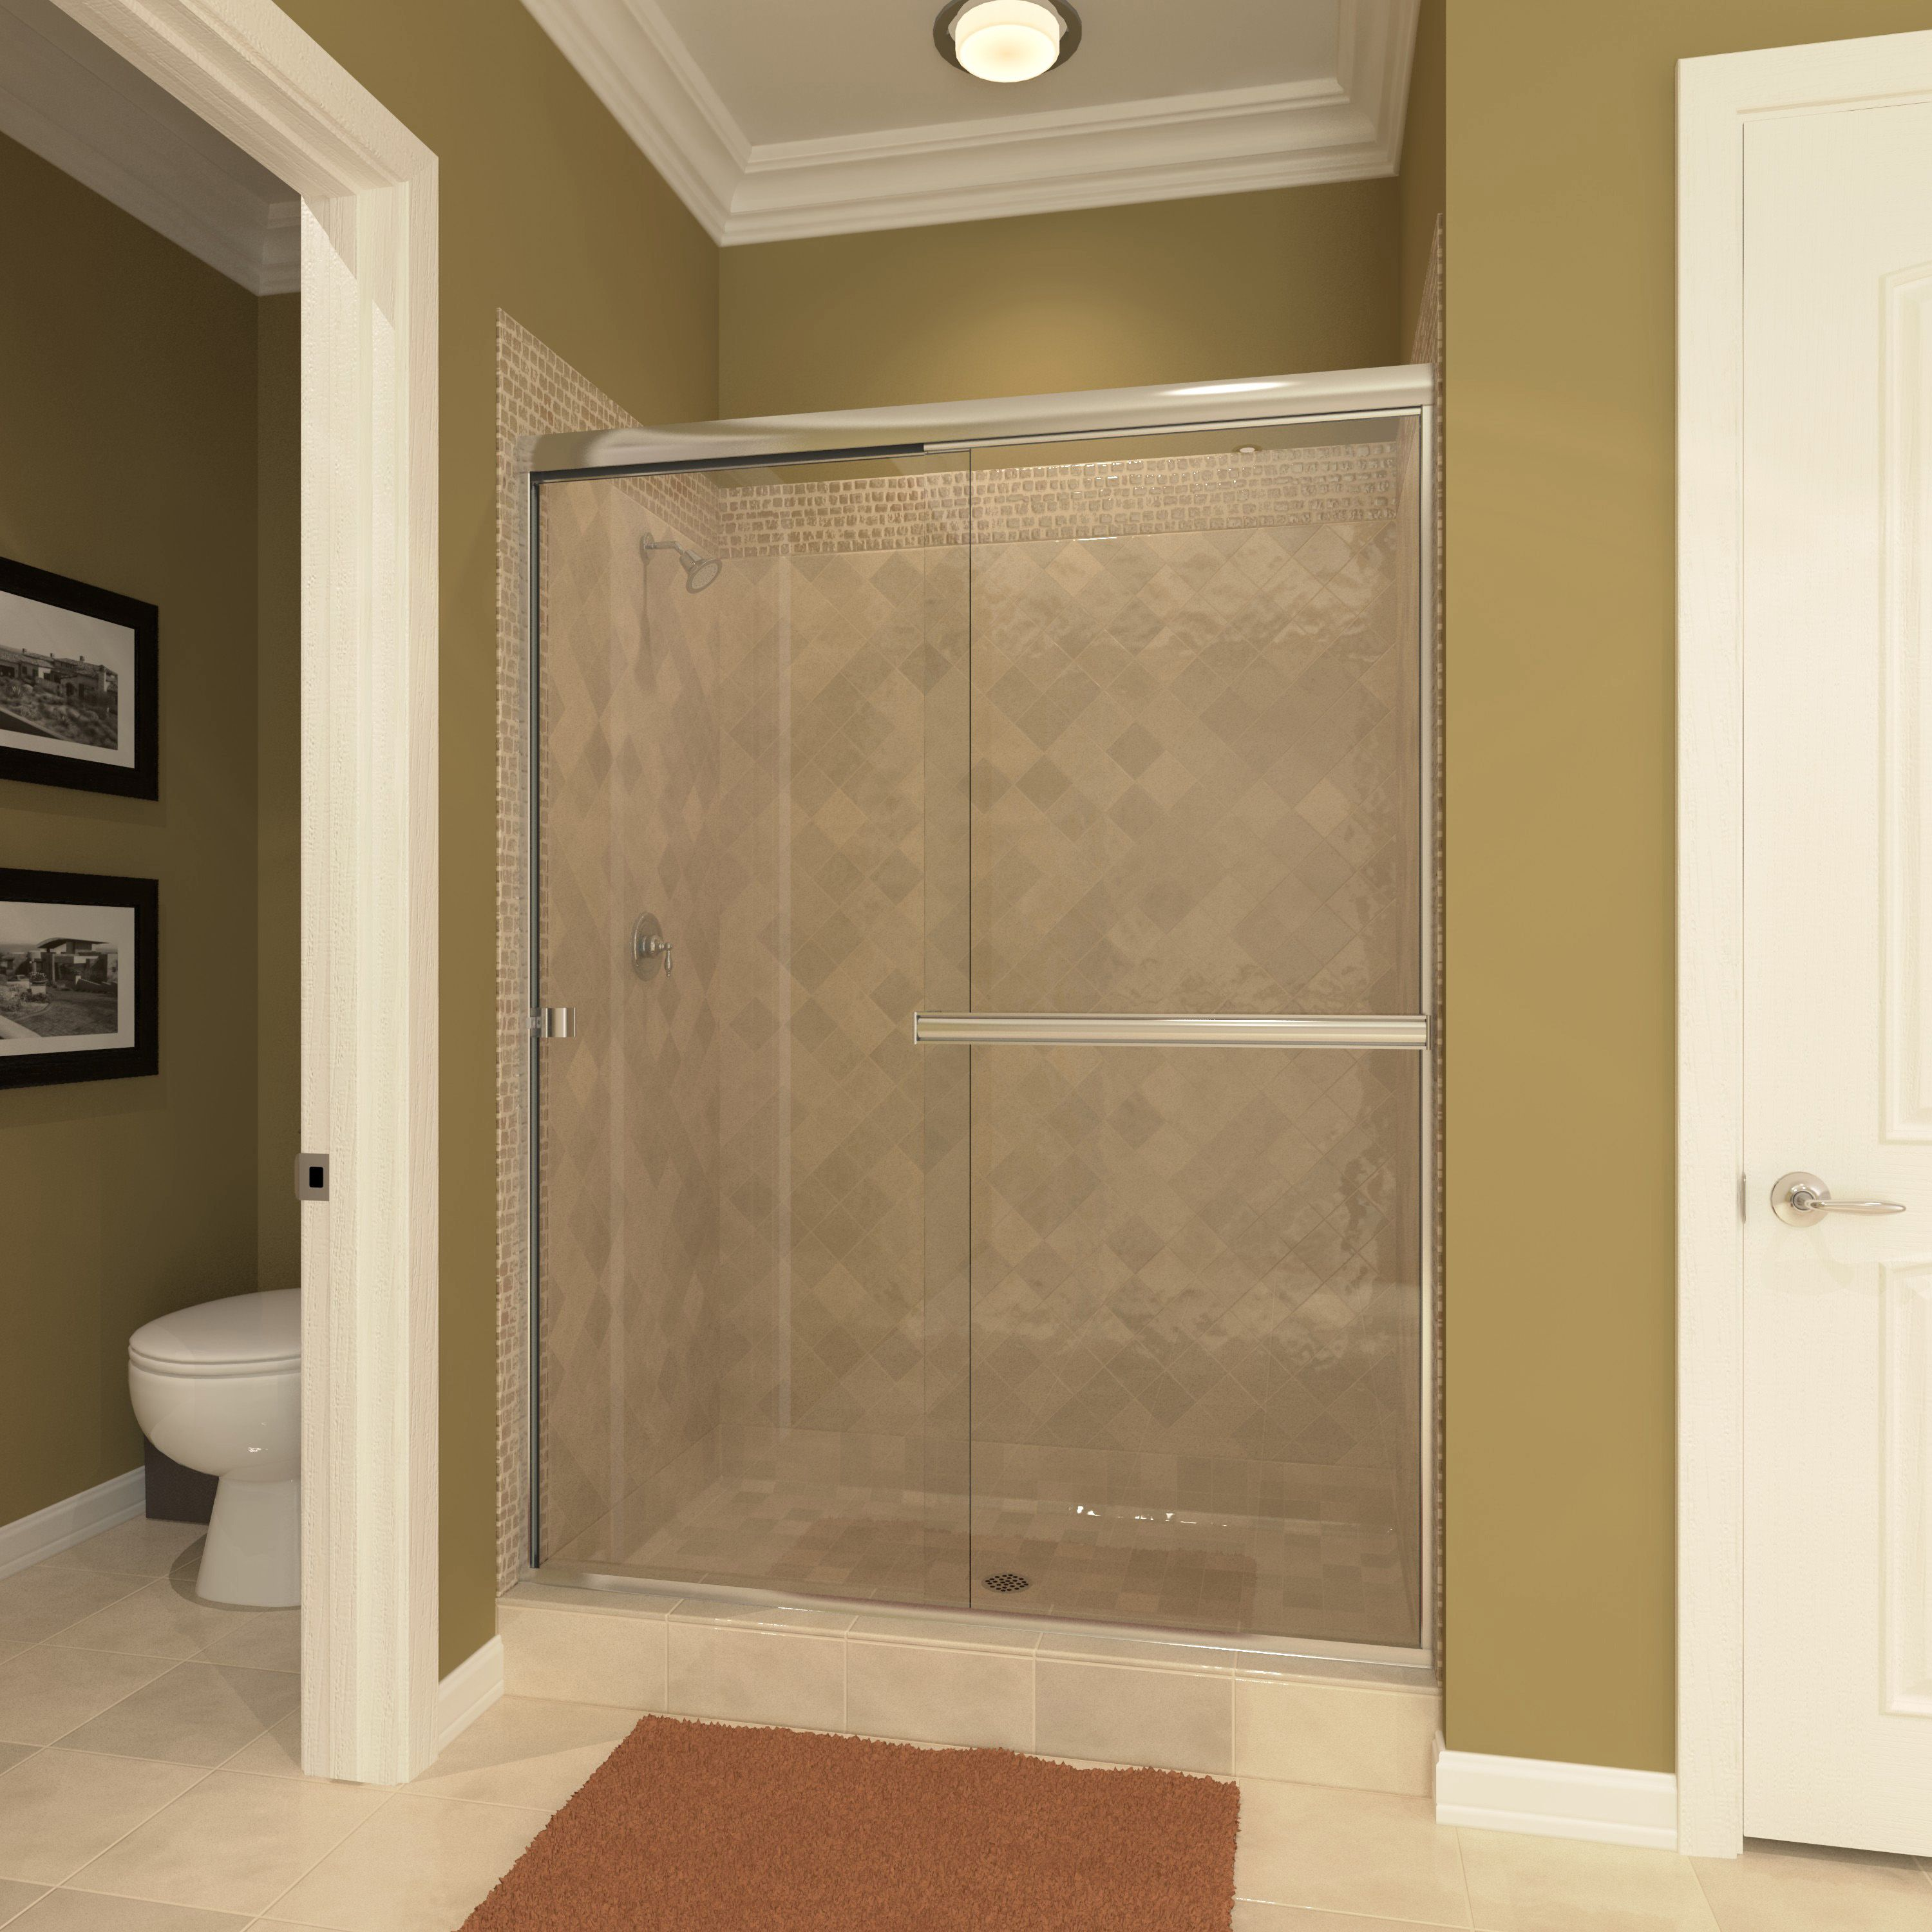 The Traditional Series shower enclosure is a precision engineered good quality frameless enclosure at an affordable price. The extrusions are bright dipped ... & The Light Euro Tub and Shower enclosures offer a European designer ... pezcame.com